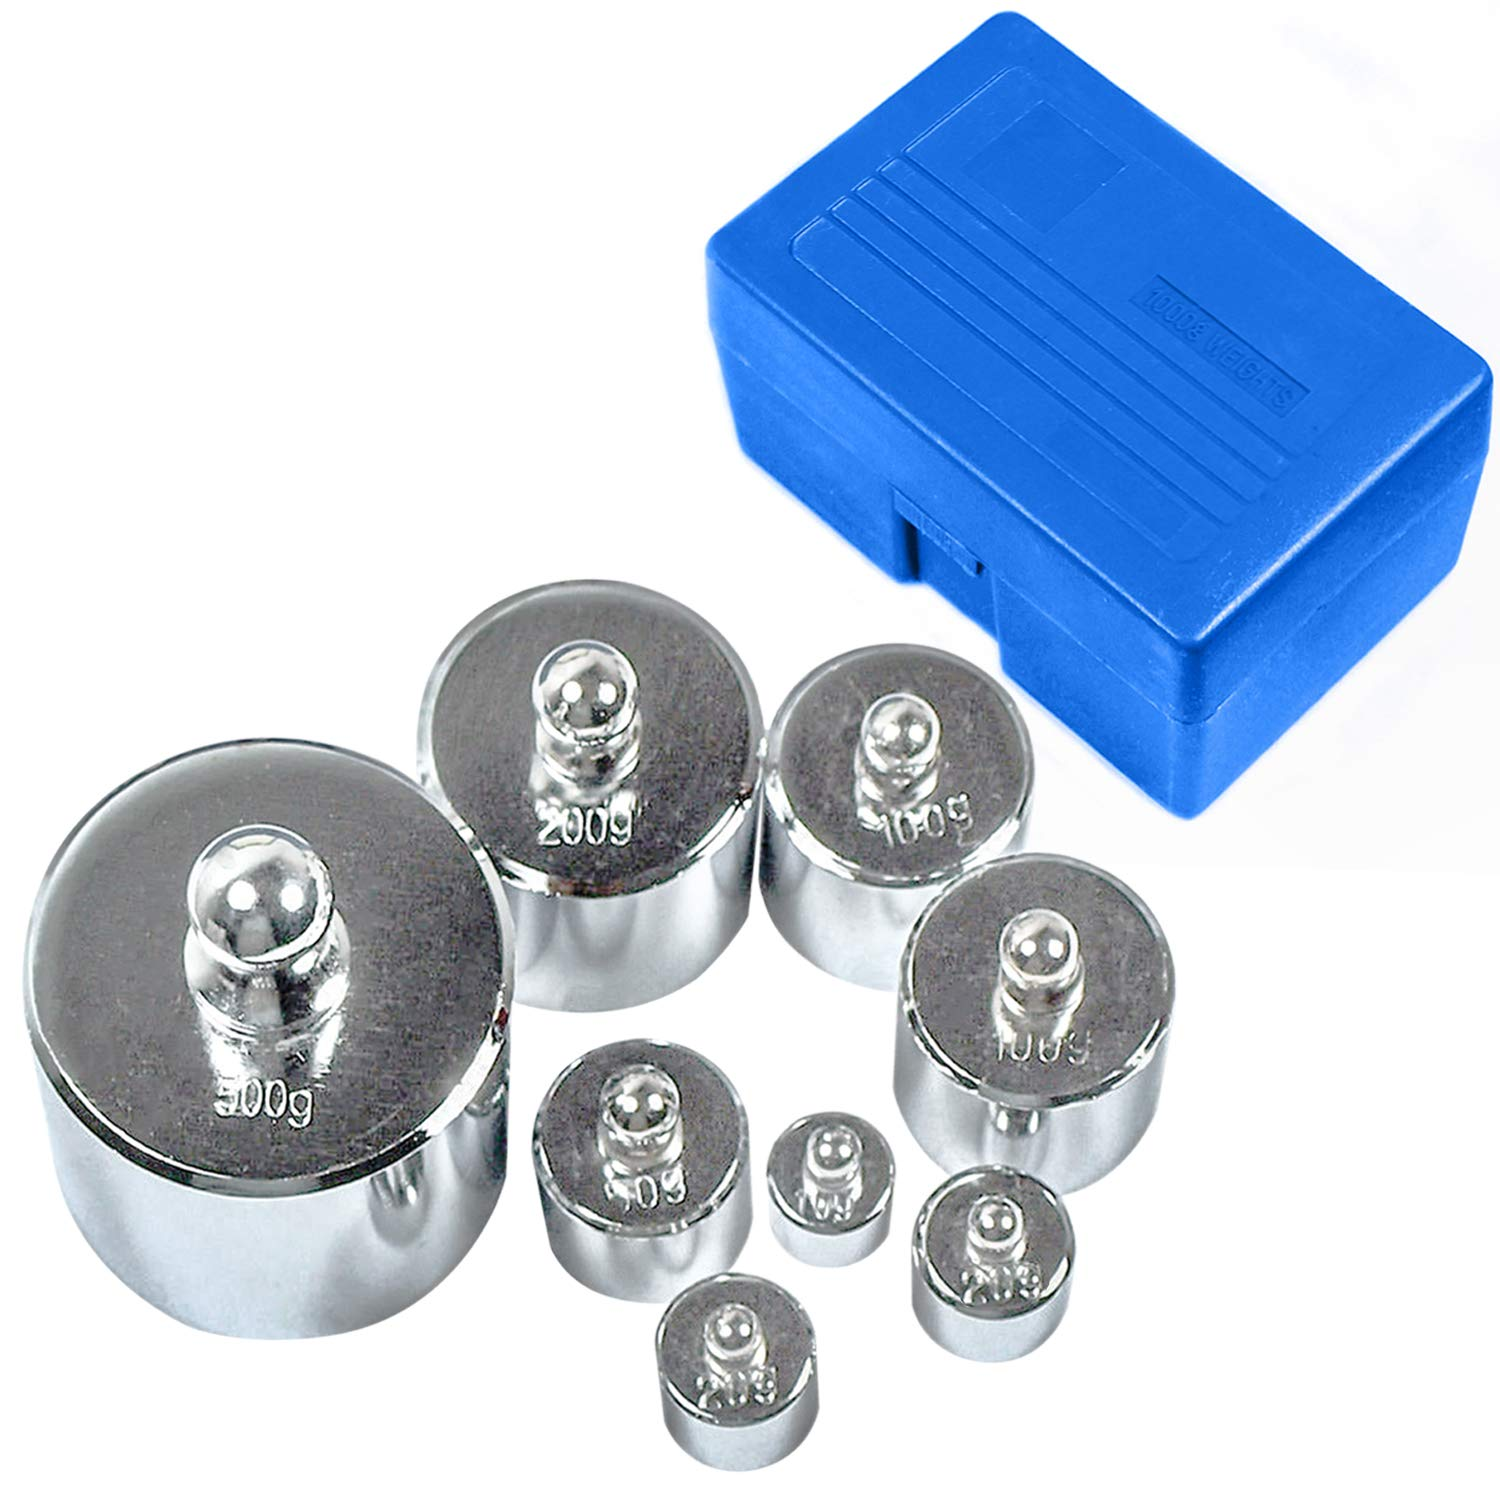 HFS (R) Scale Balance Calibration Weight Set - 10-1000g 8Pc Set With Case (8pcs : 10g,20g,20g,50g,100g,100g,200g,500g) 8pcs is 1000Gram total by HFS